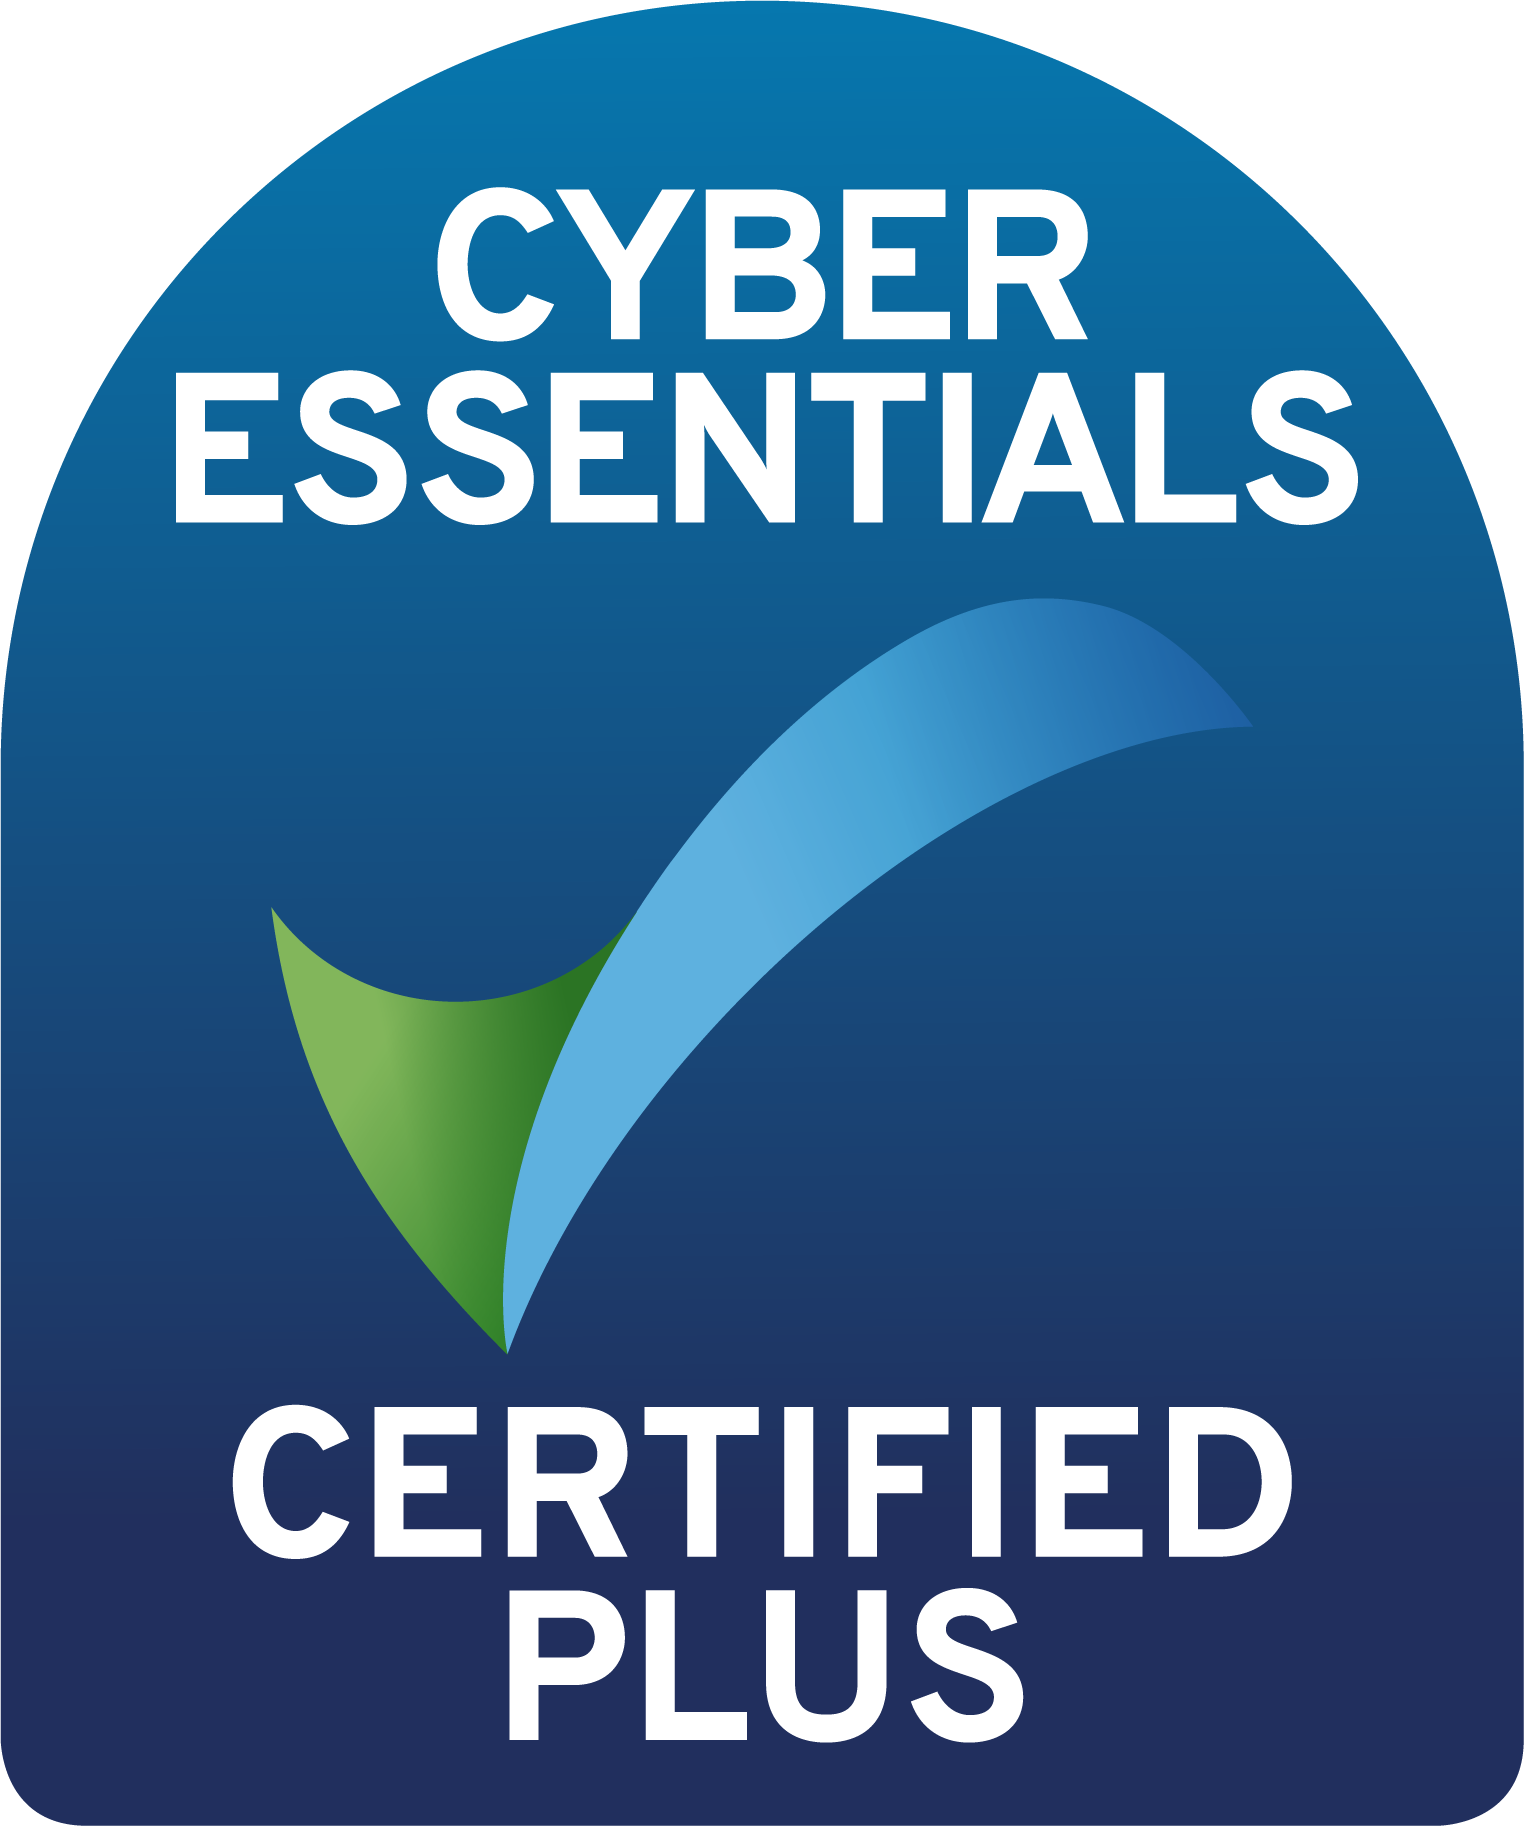 We have our Cyber Essentials Plus Certification.